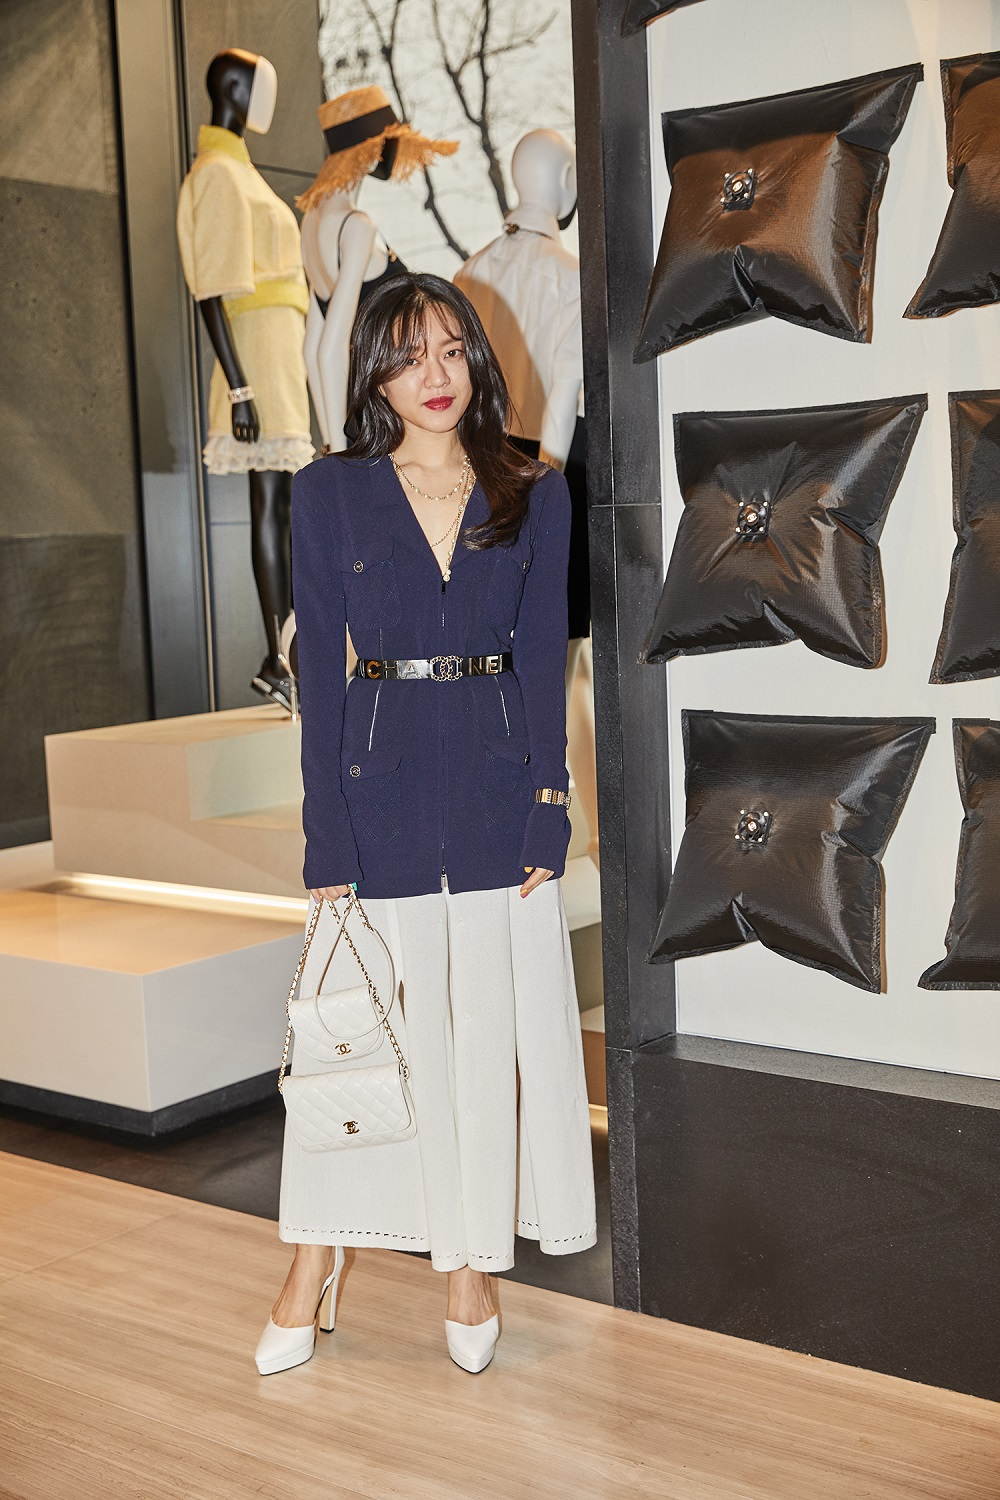 Ah-sung Go wore a black cotton jacket (look 70 from the Spring-Summer 2019 Ready-to-Wear collection), white cotton pants (look 67 from the Spring-Summer 2019 Act 1 Ready-to-Wear collection), CHANEL accessories and bag. She also wore